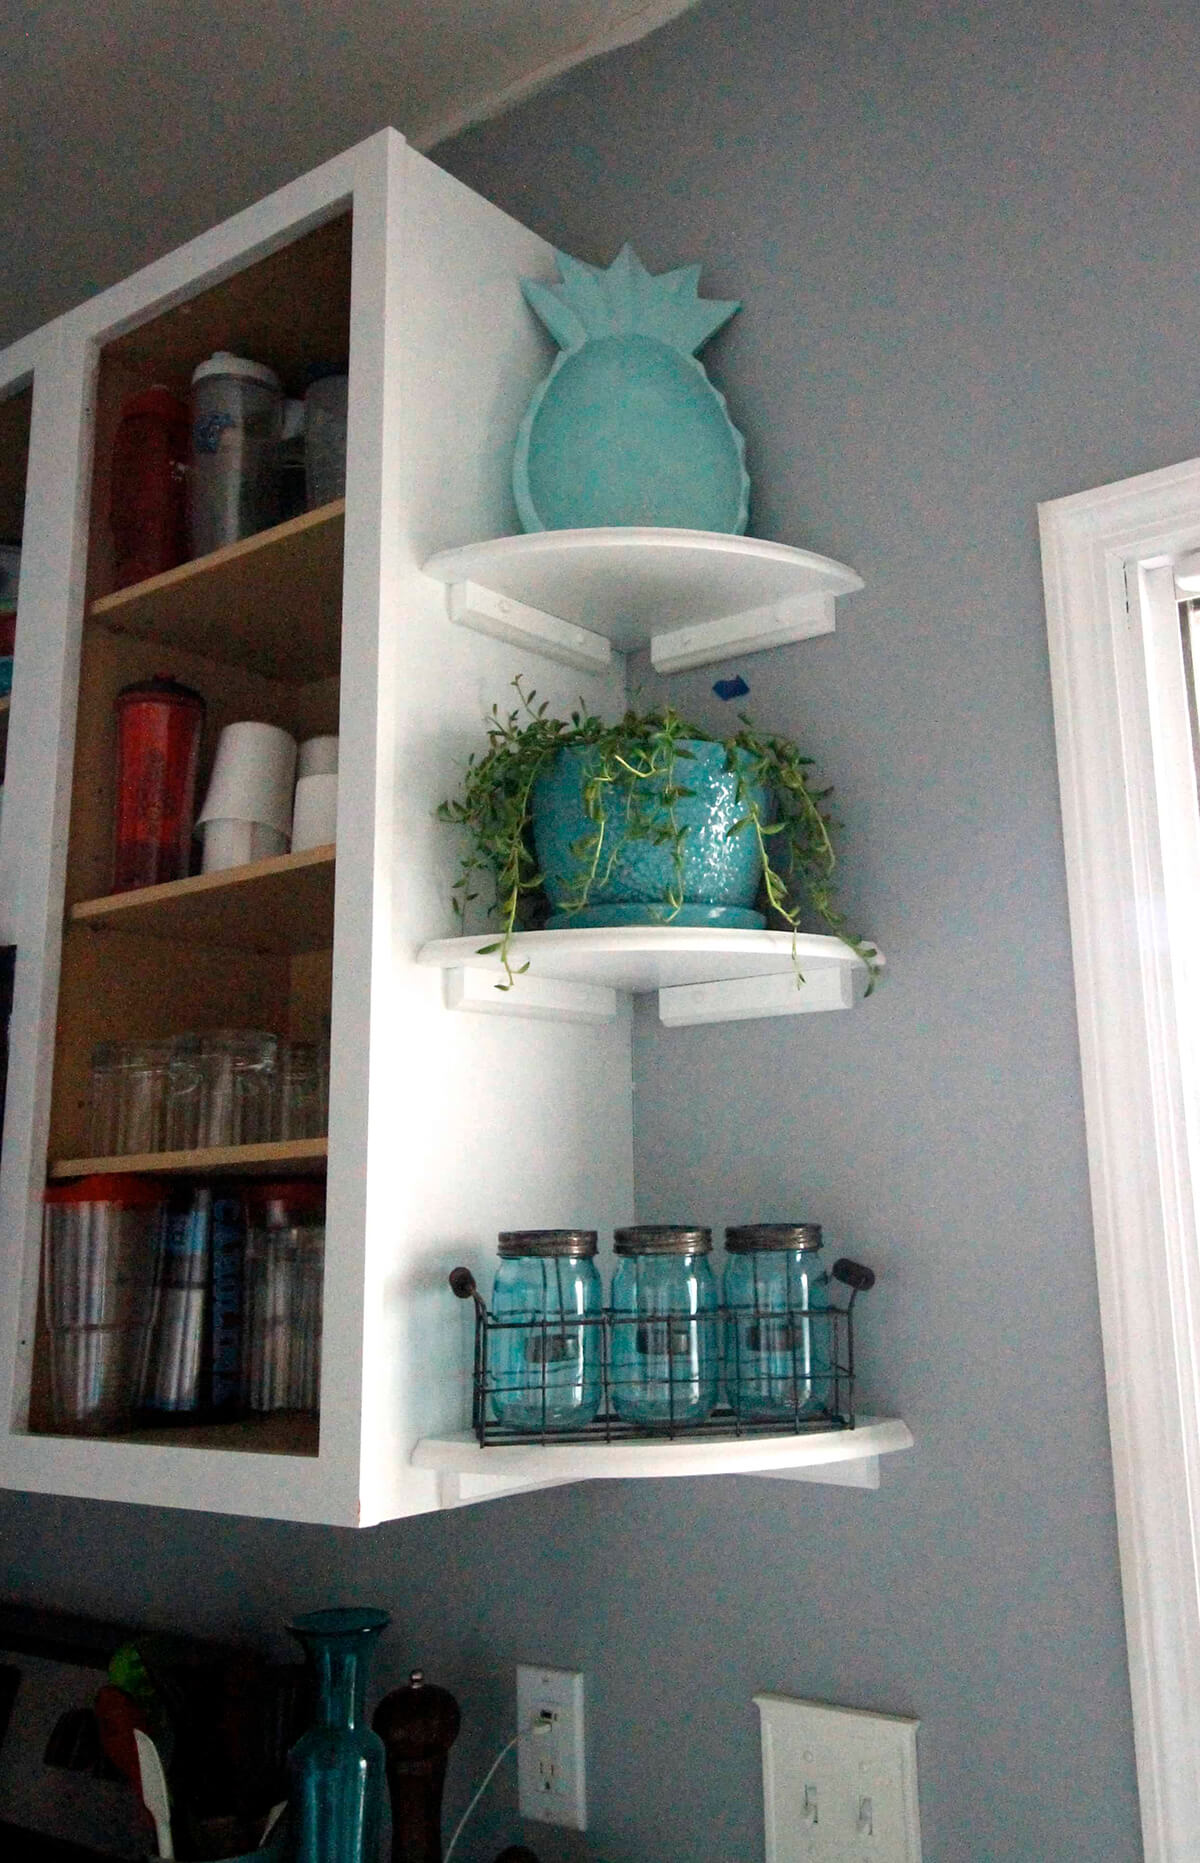 Decorative End Shelves